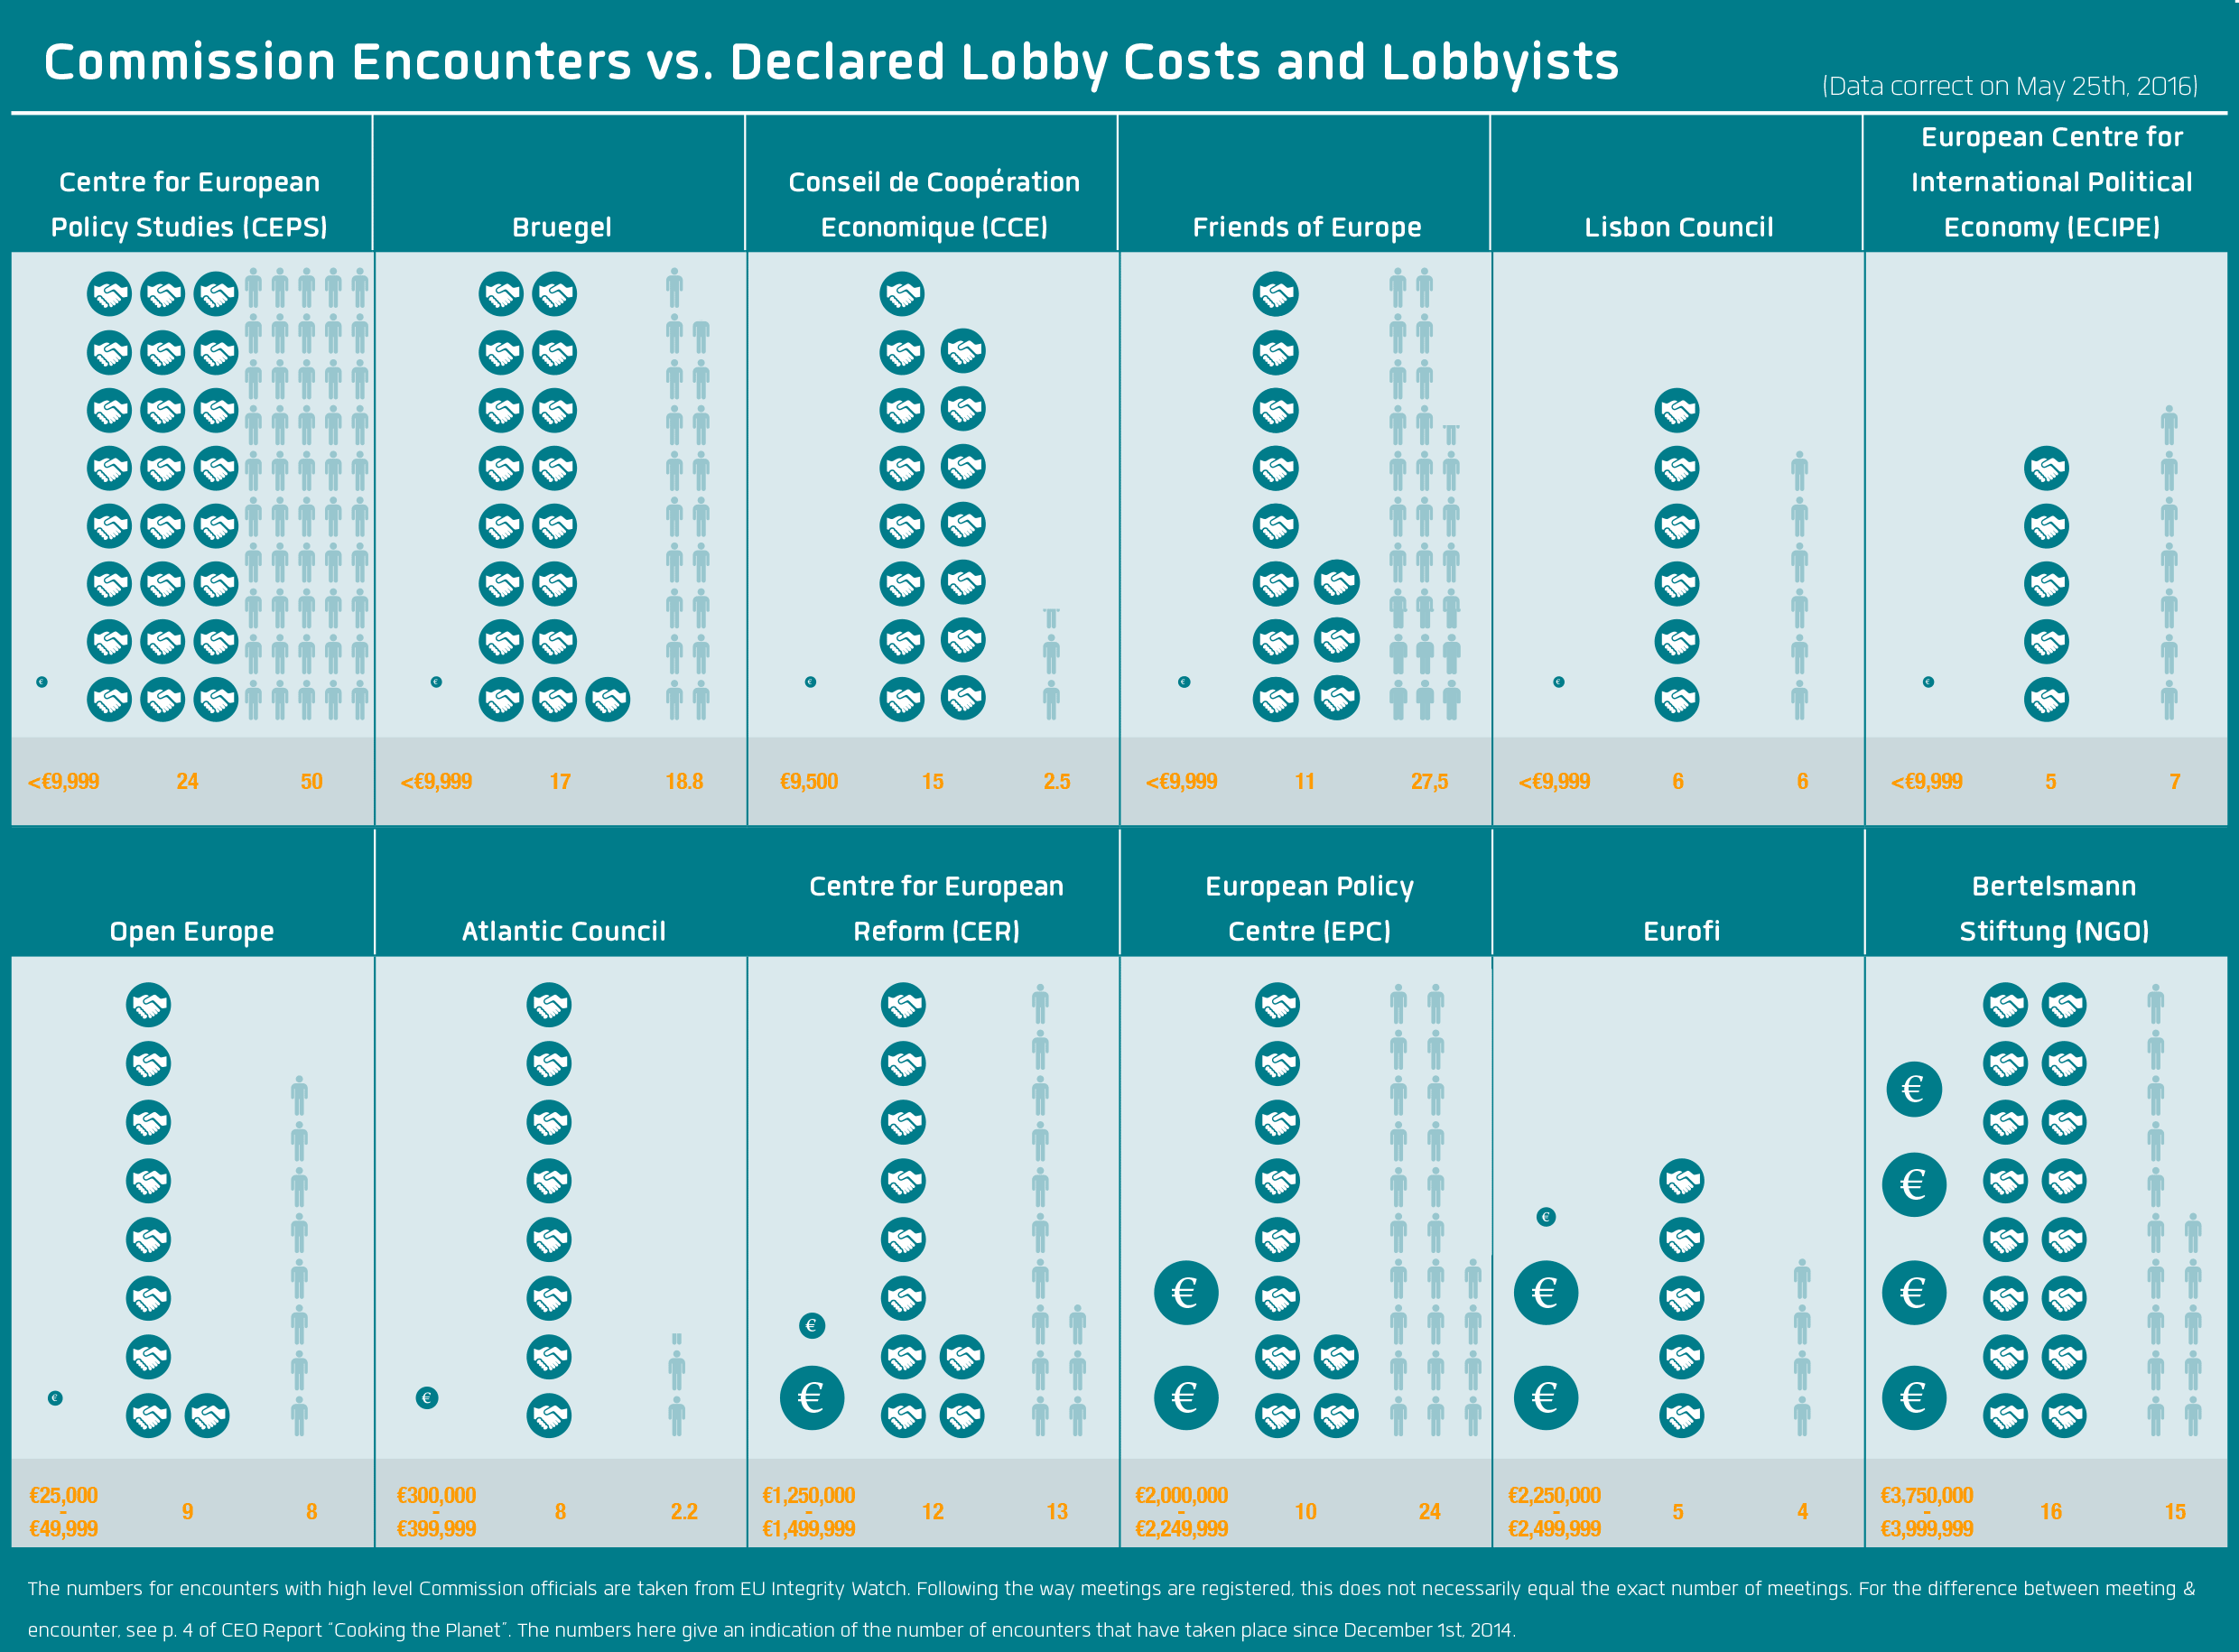 Commission Encounters vs. Declared Lobby Costs and Lobbyists